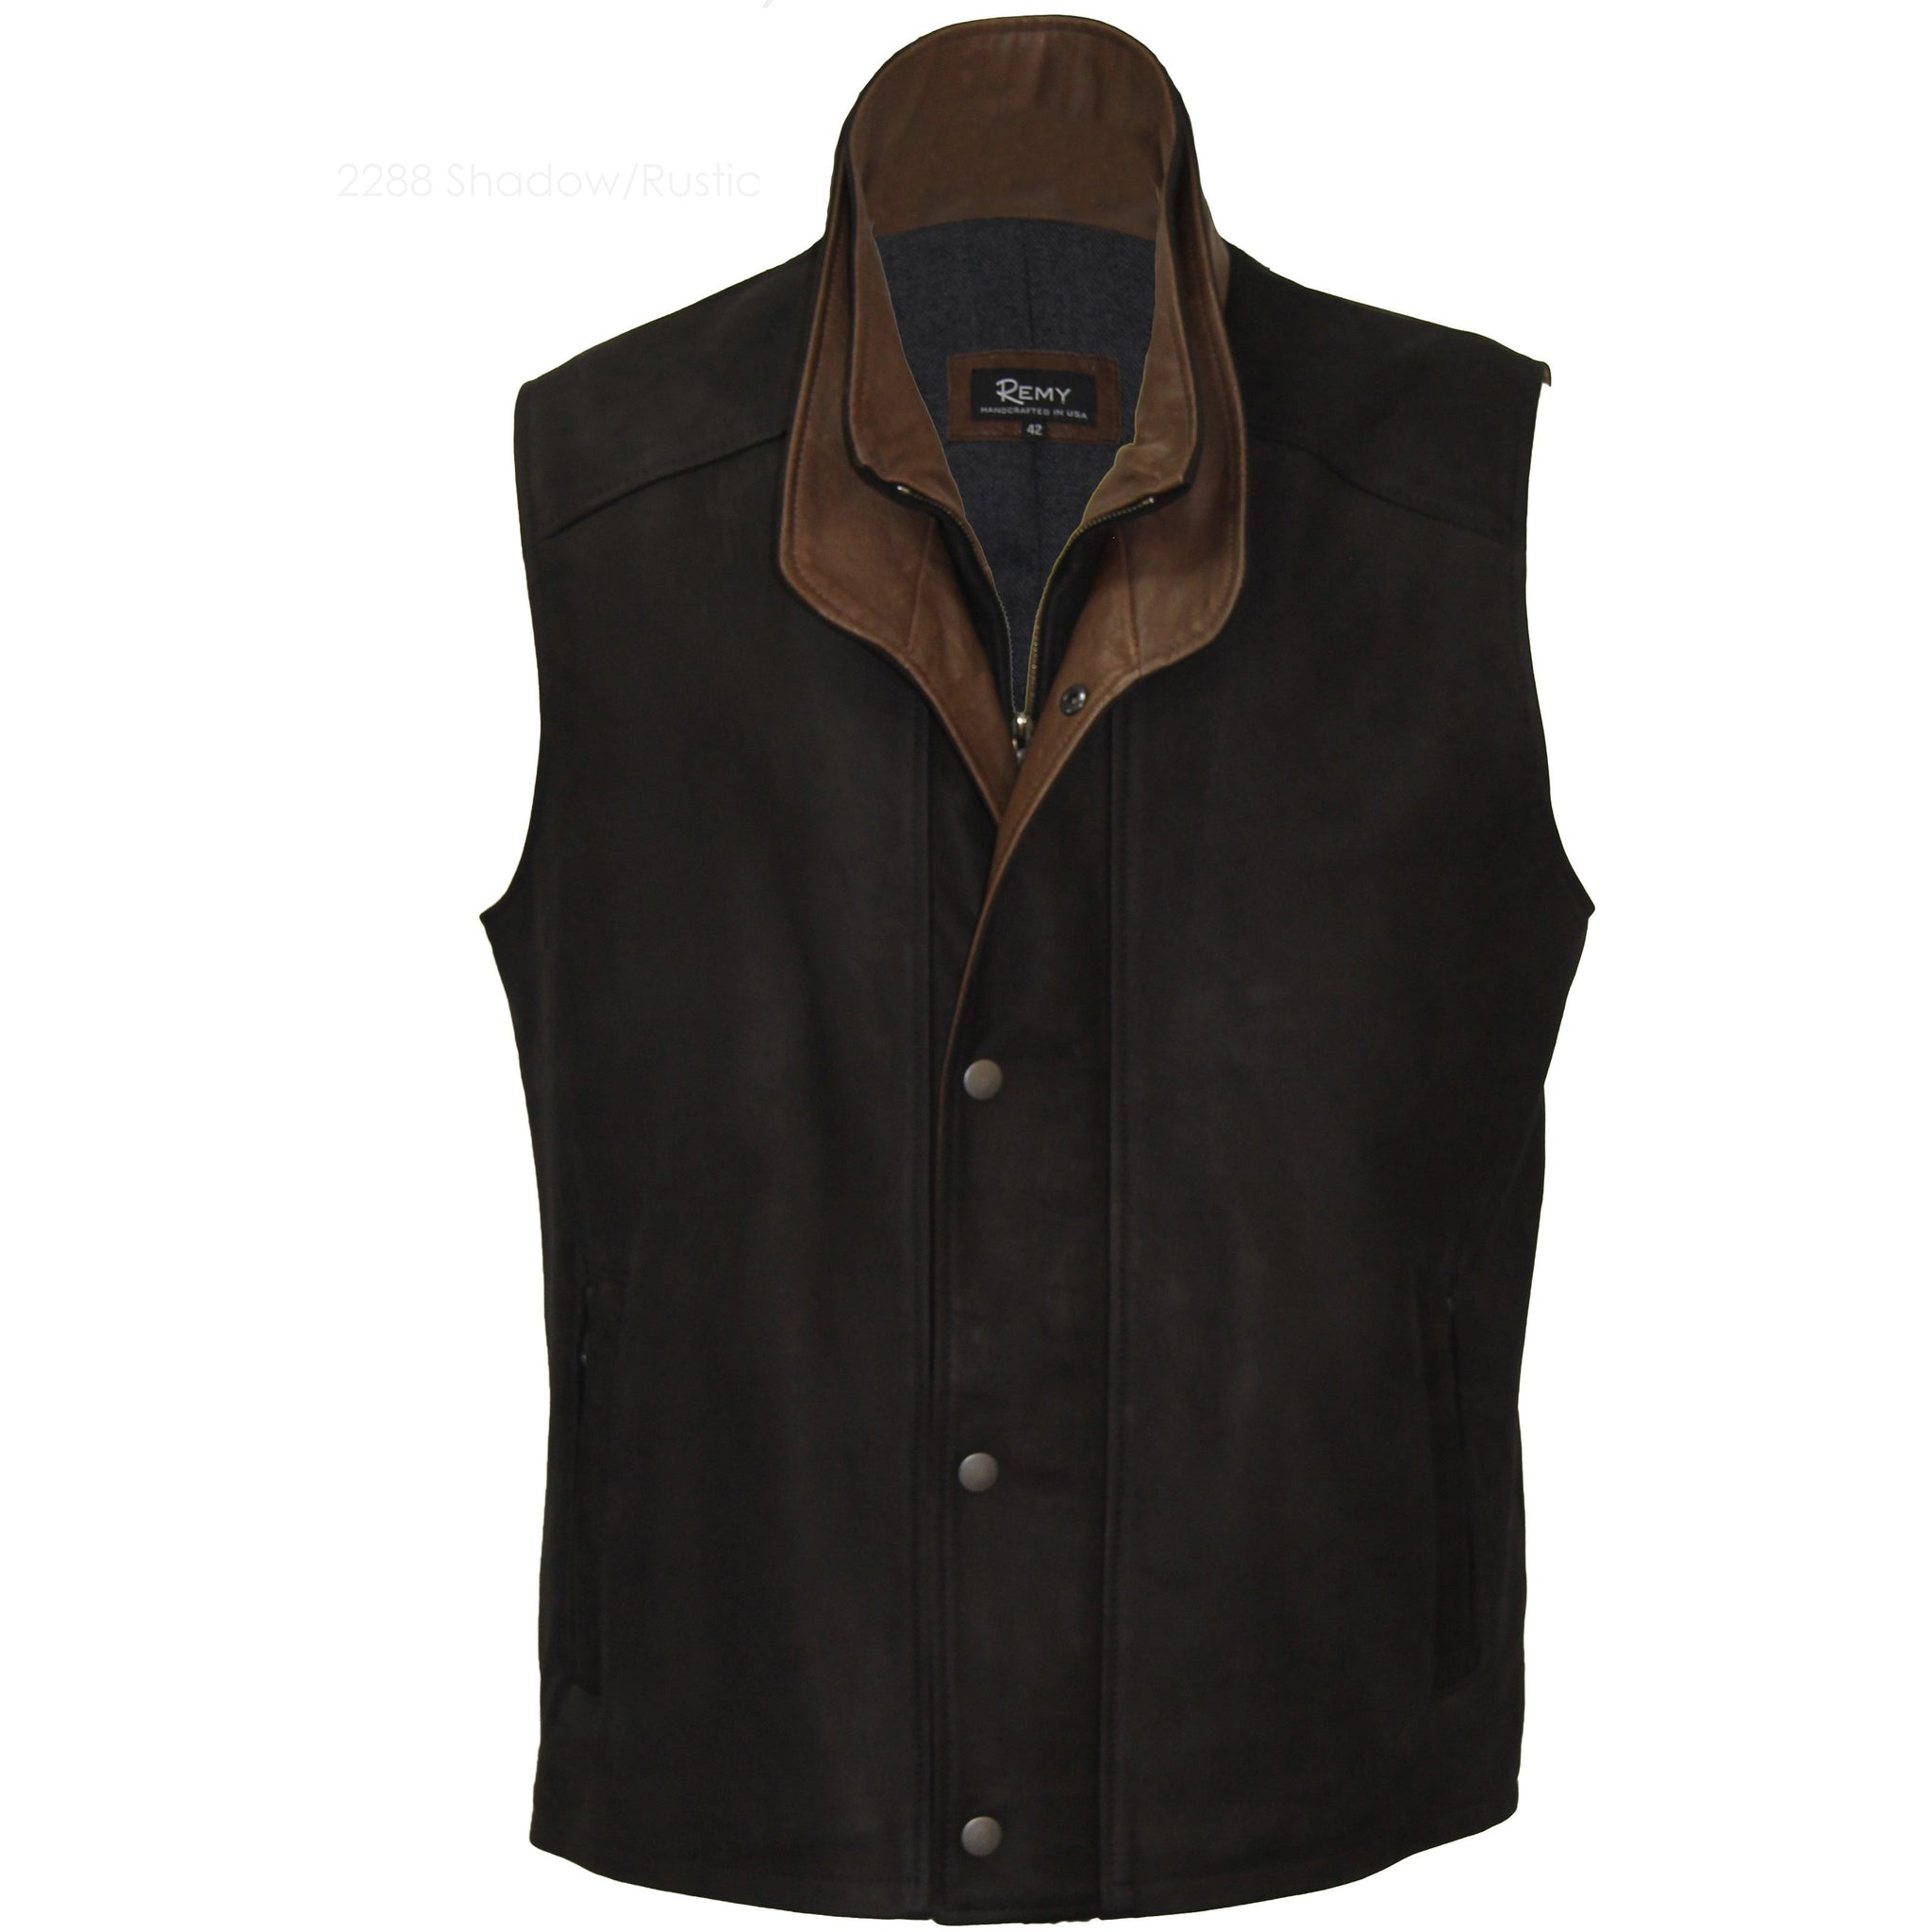 2288 - Mens Leather Double Collar Vest